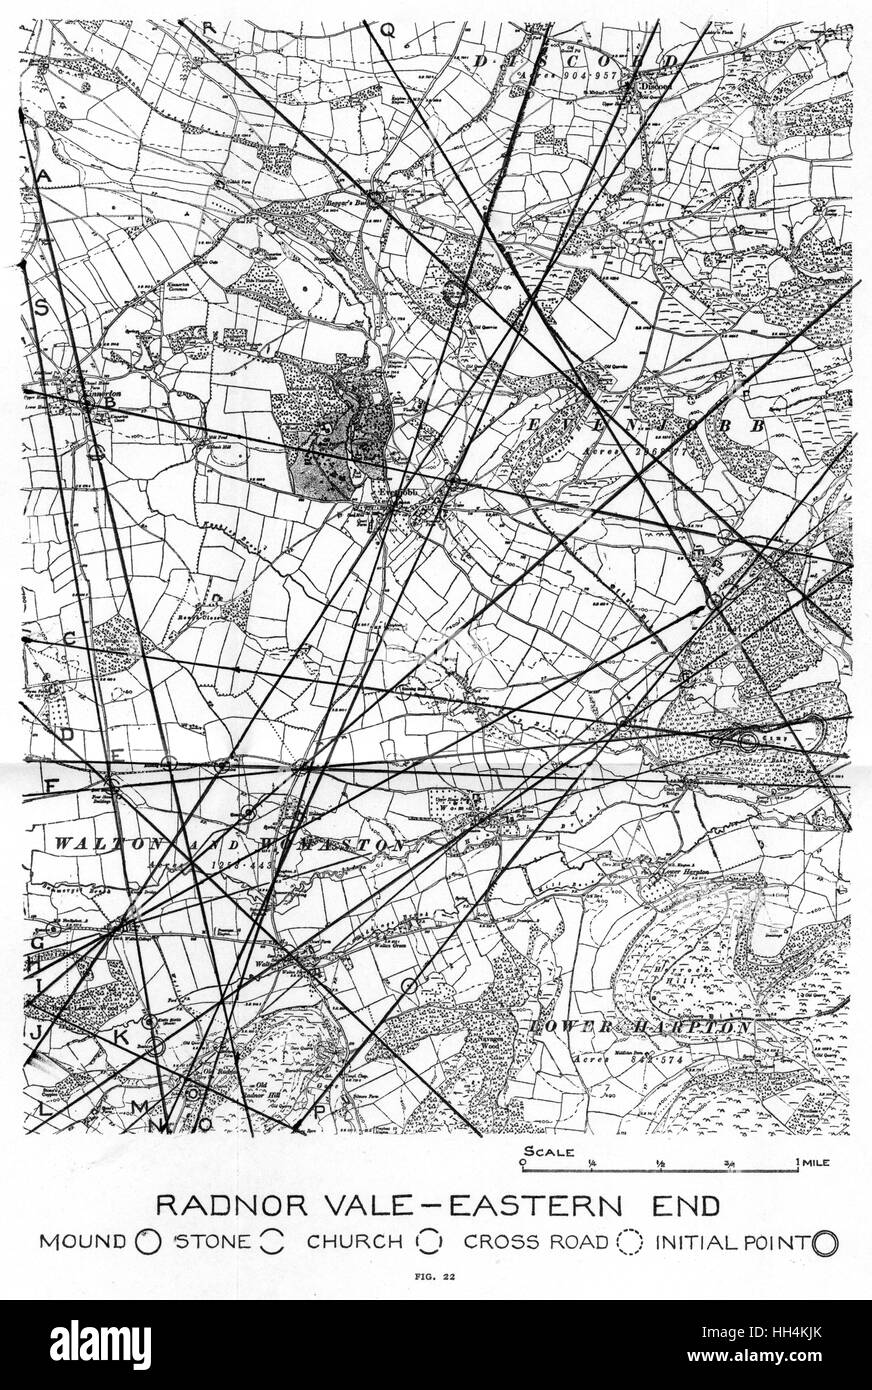 Map showing the eastern end of Radnor Vale, Wales, with the ley lines drawn in by hand. - Stock Image